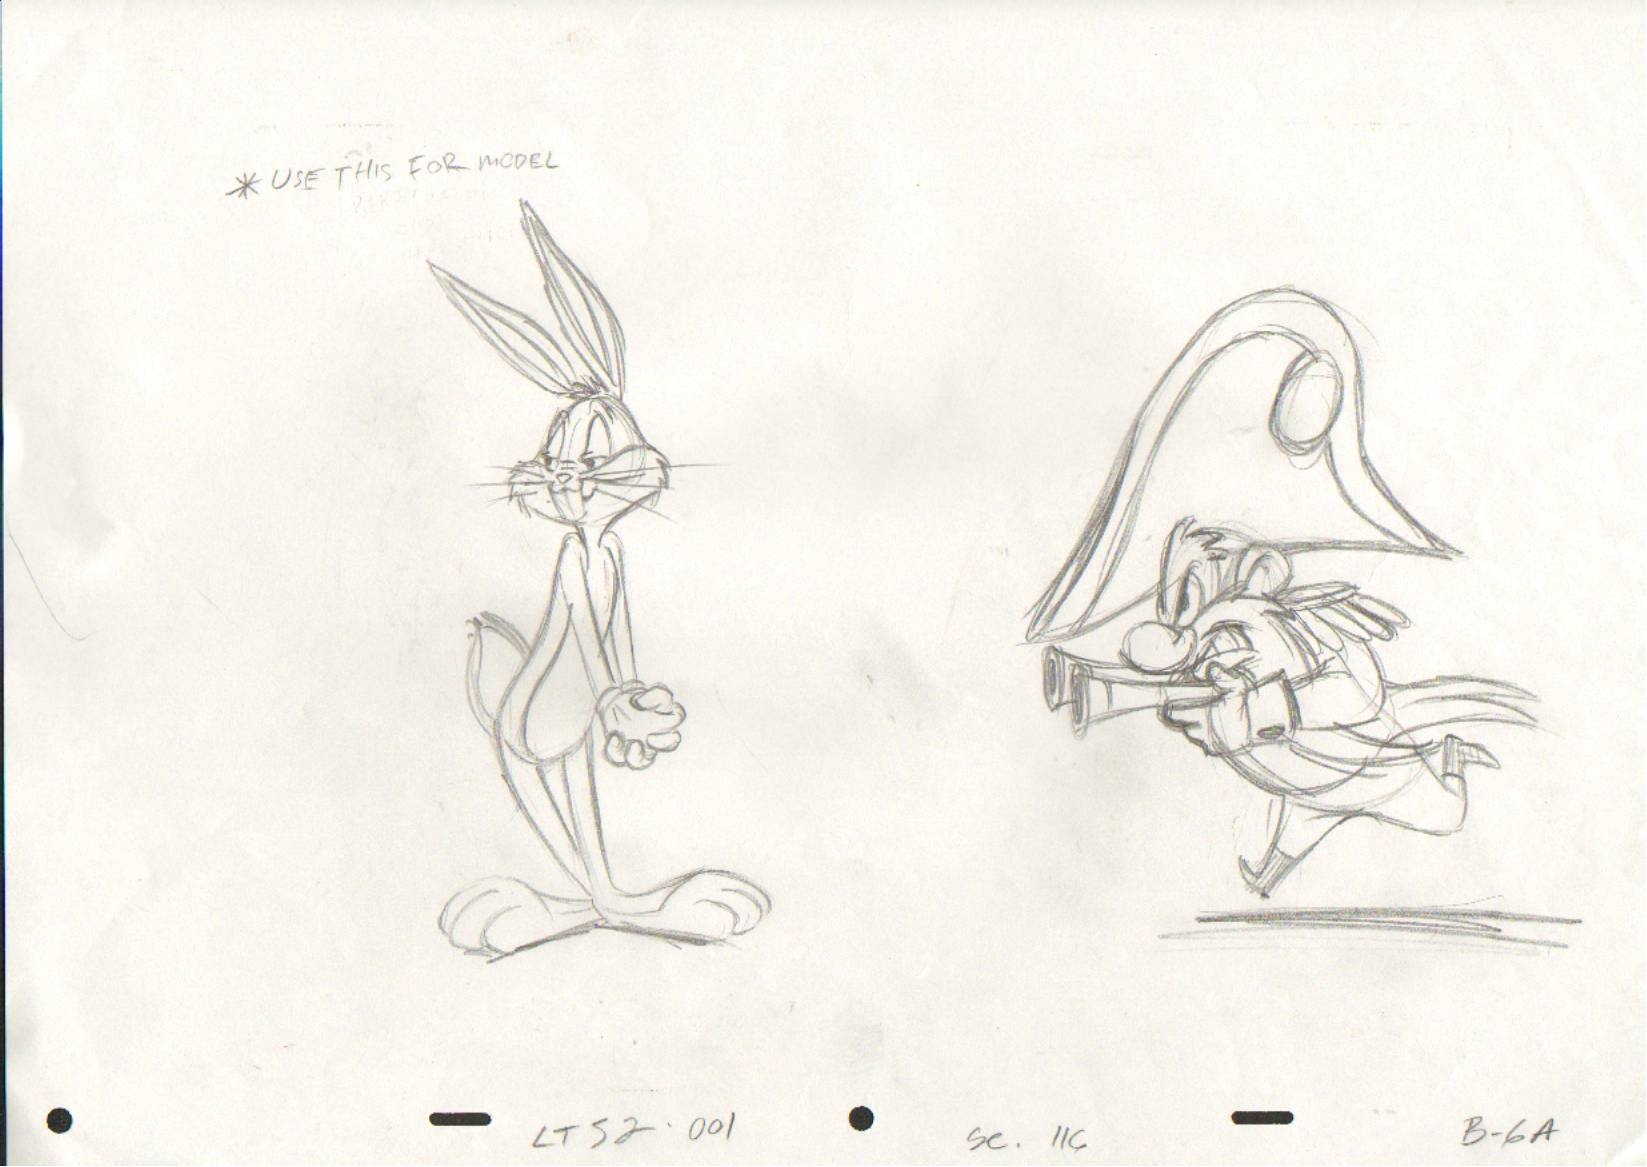 1647x1167 Bugs Bunny Cel Drawing @ Animationvalley.co.uk, In Animation